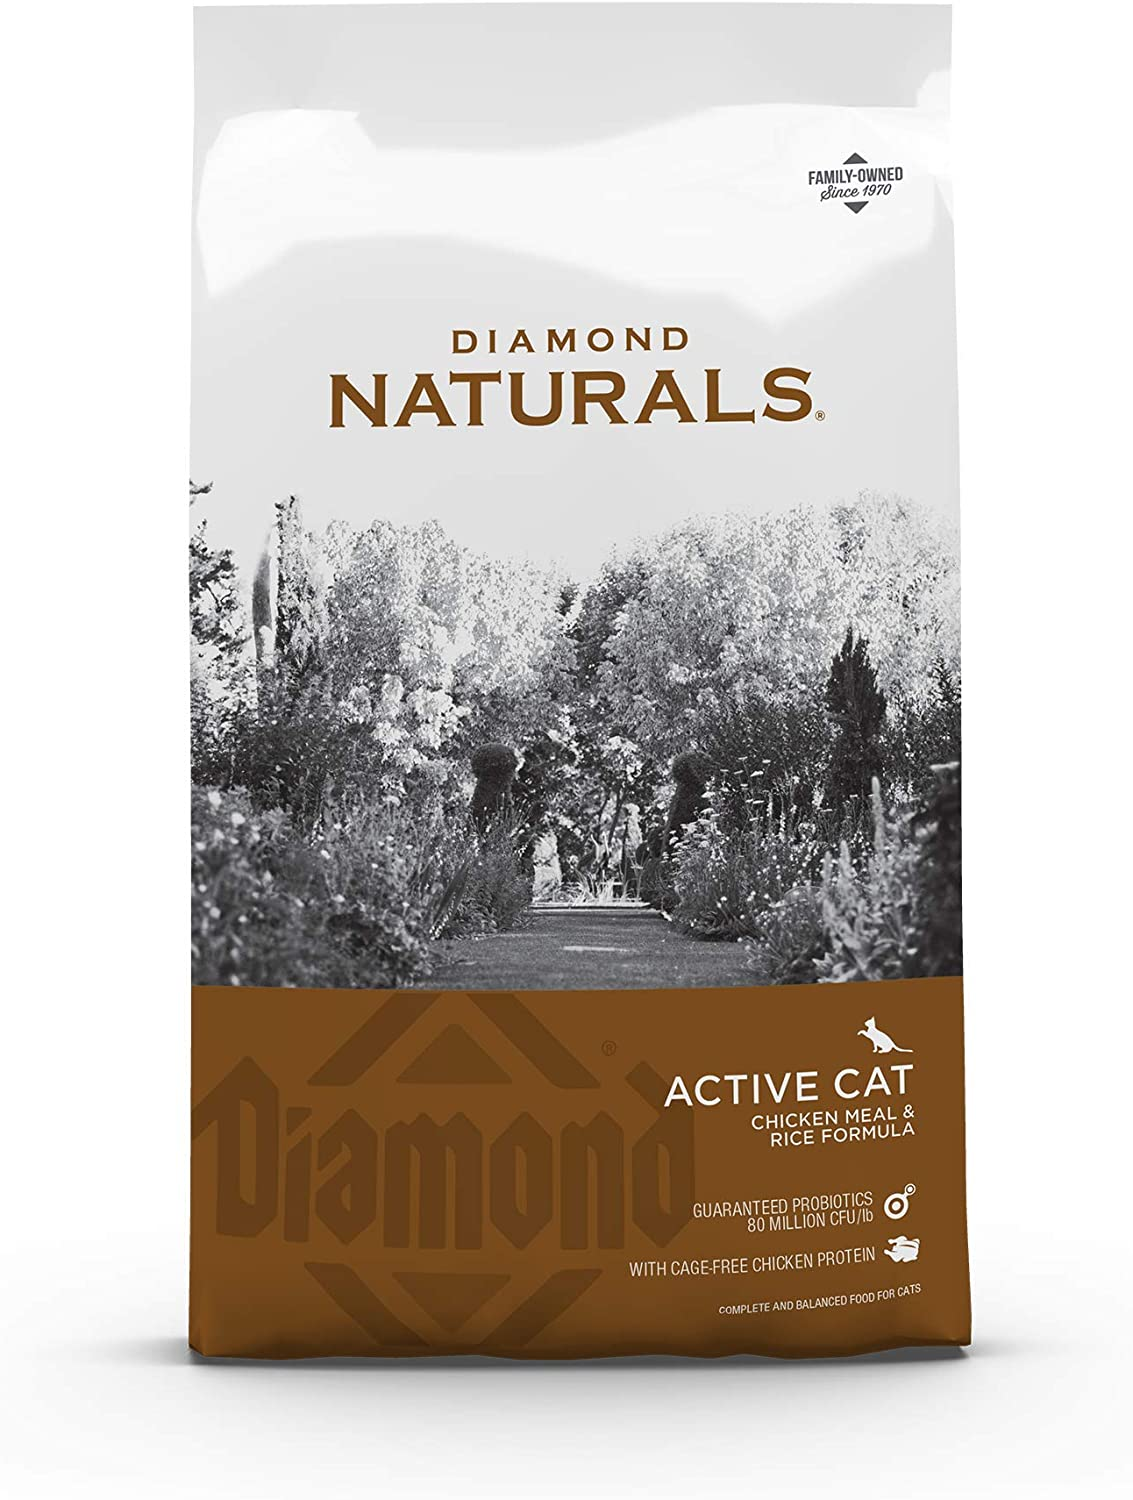 Diamond Naturals Active Cat Adult Dry Cat Food Chicken Protein Formula from Cage-Free Chicken with Superfoods, Probiotics, Antioxidants and Essential Nutrients 18lb